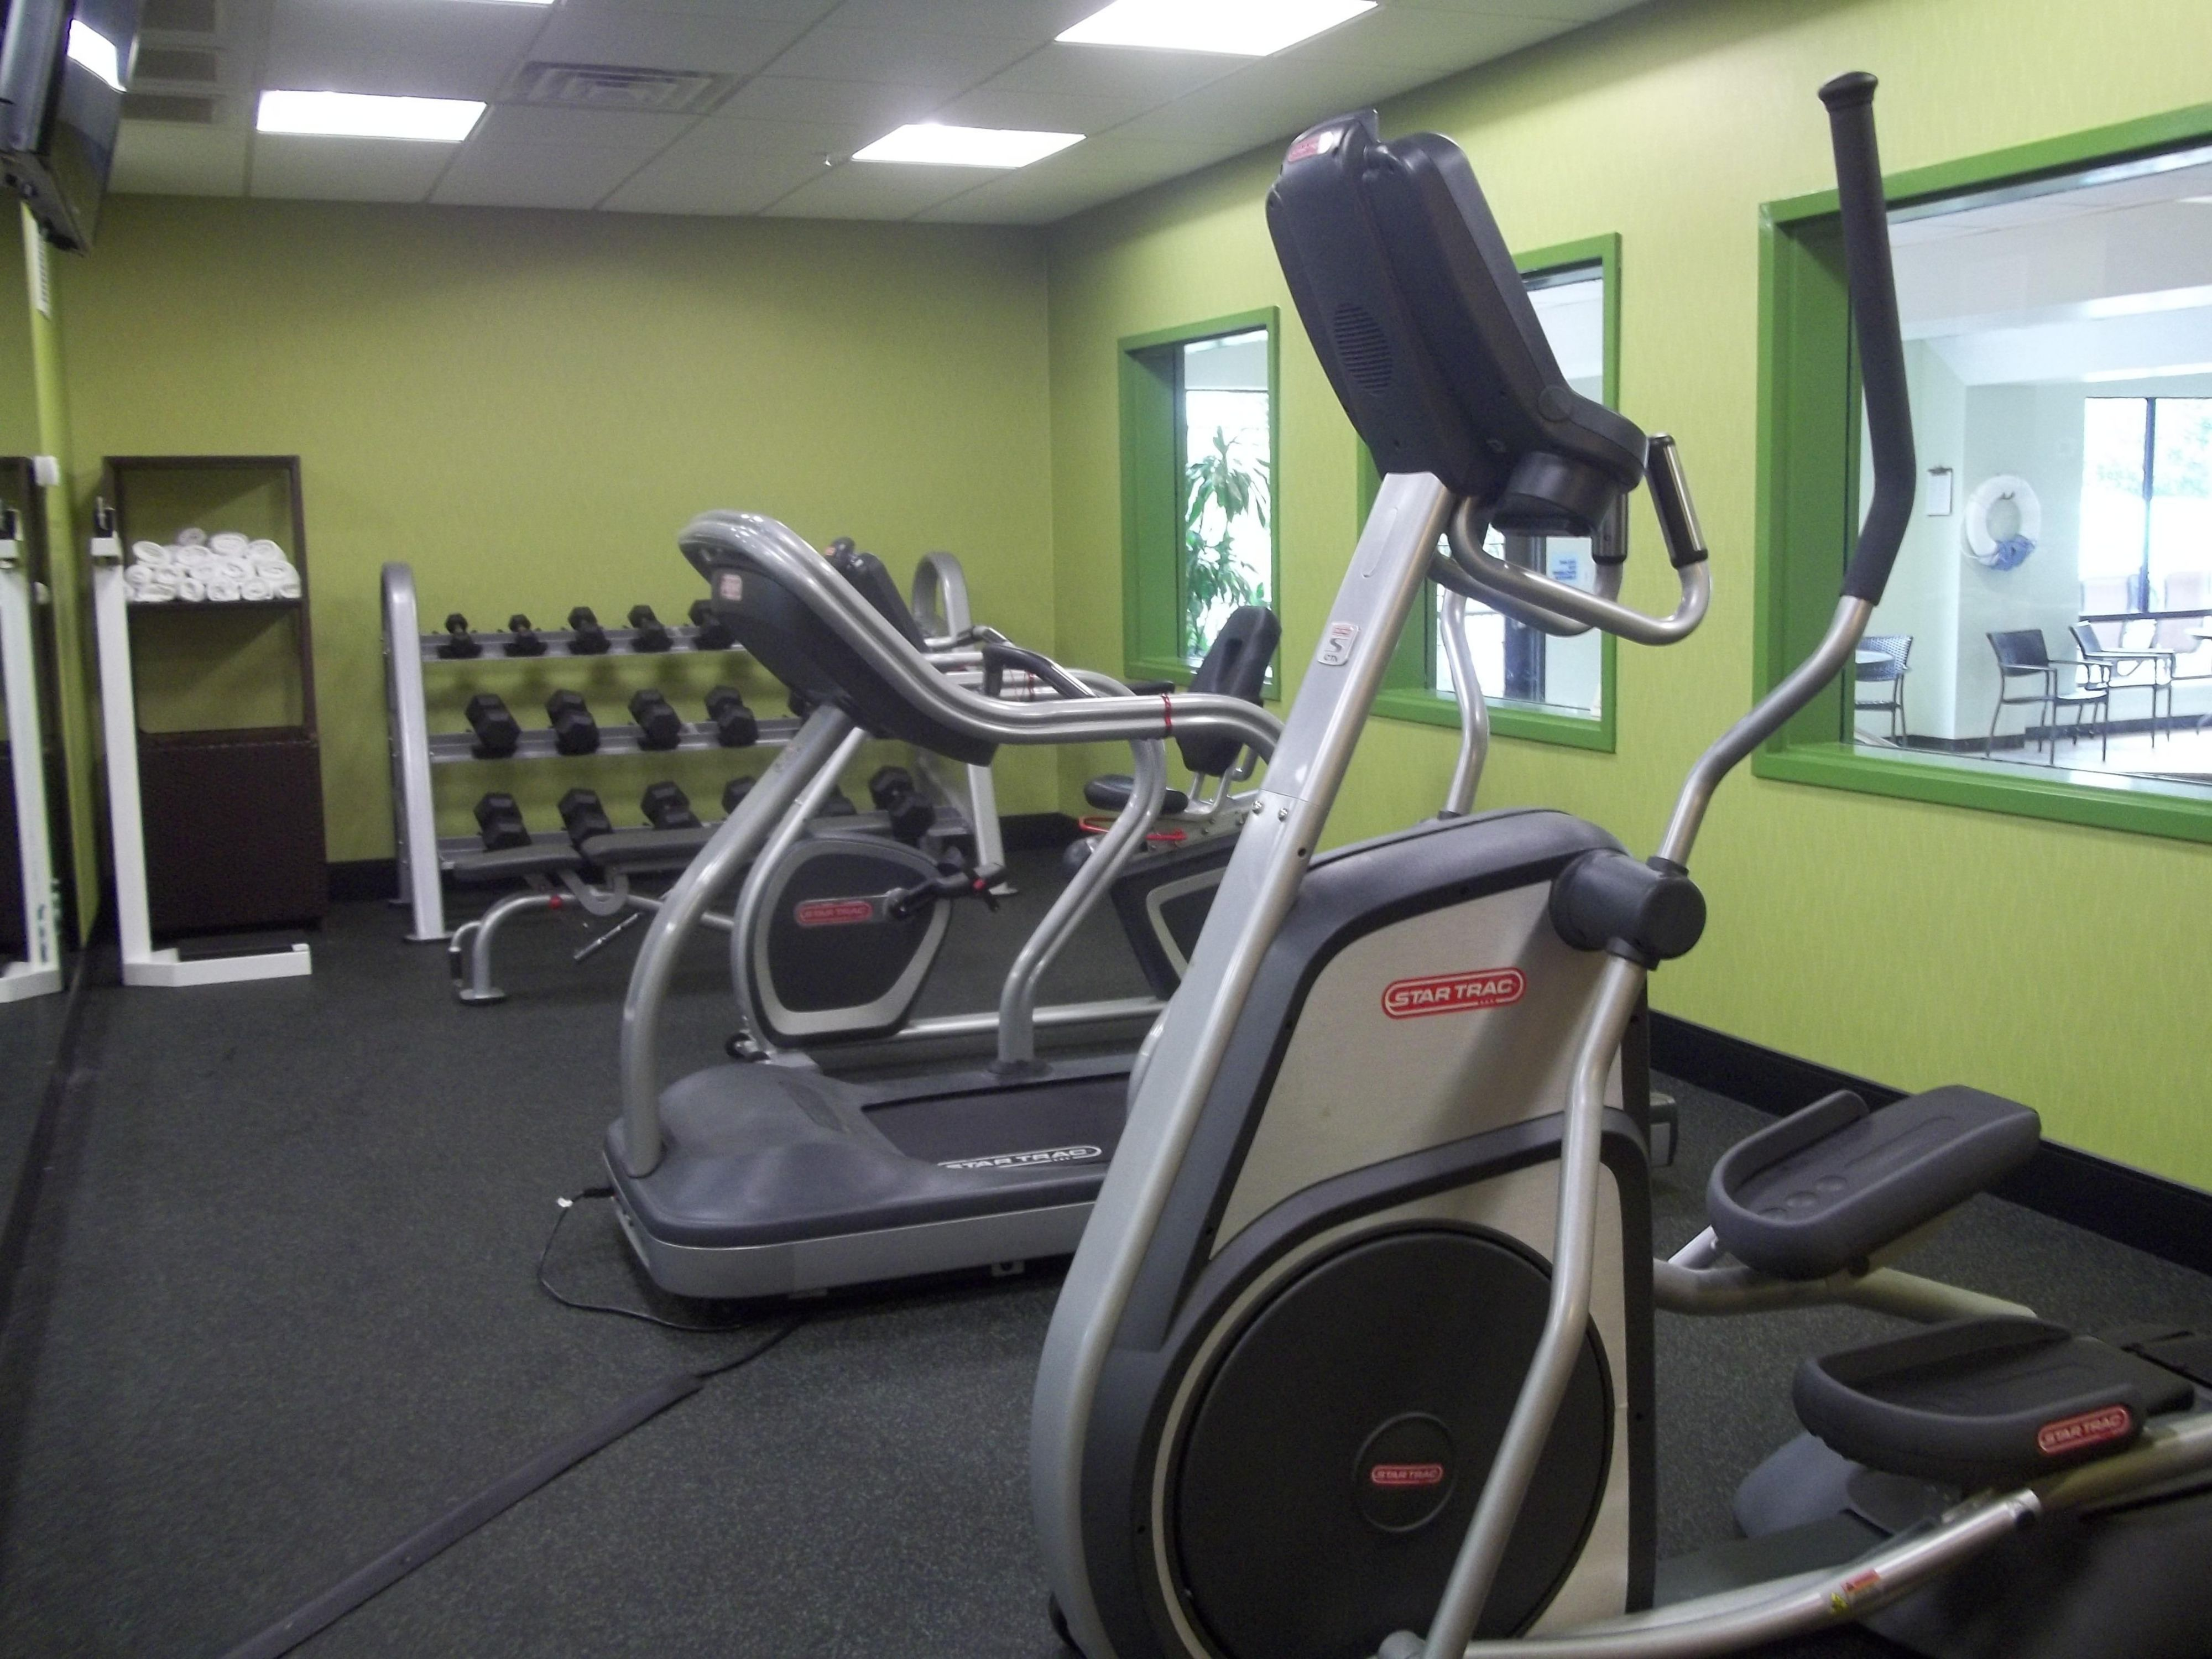 Work out in our fully equipped fitness center